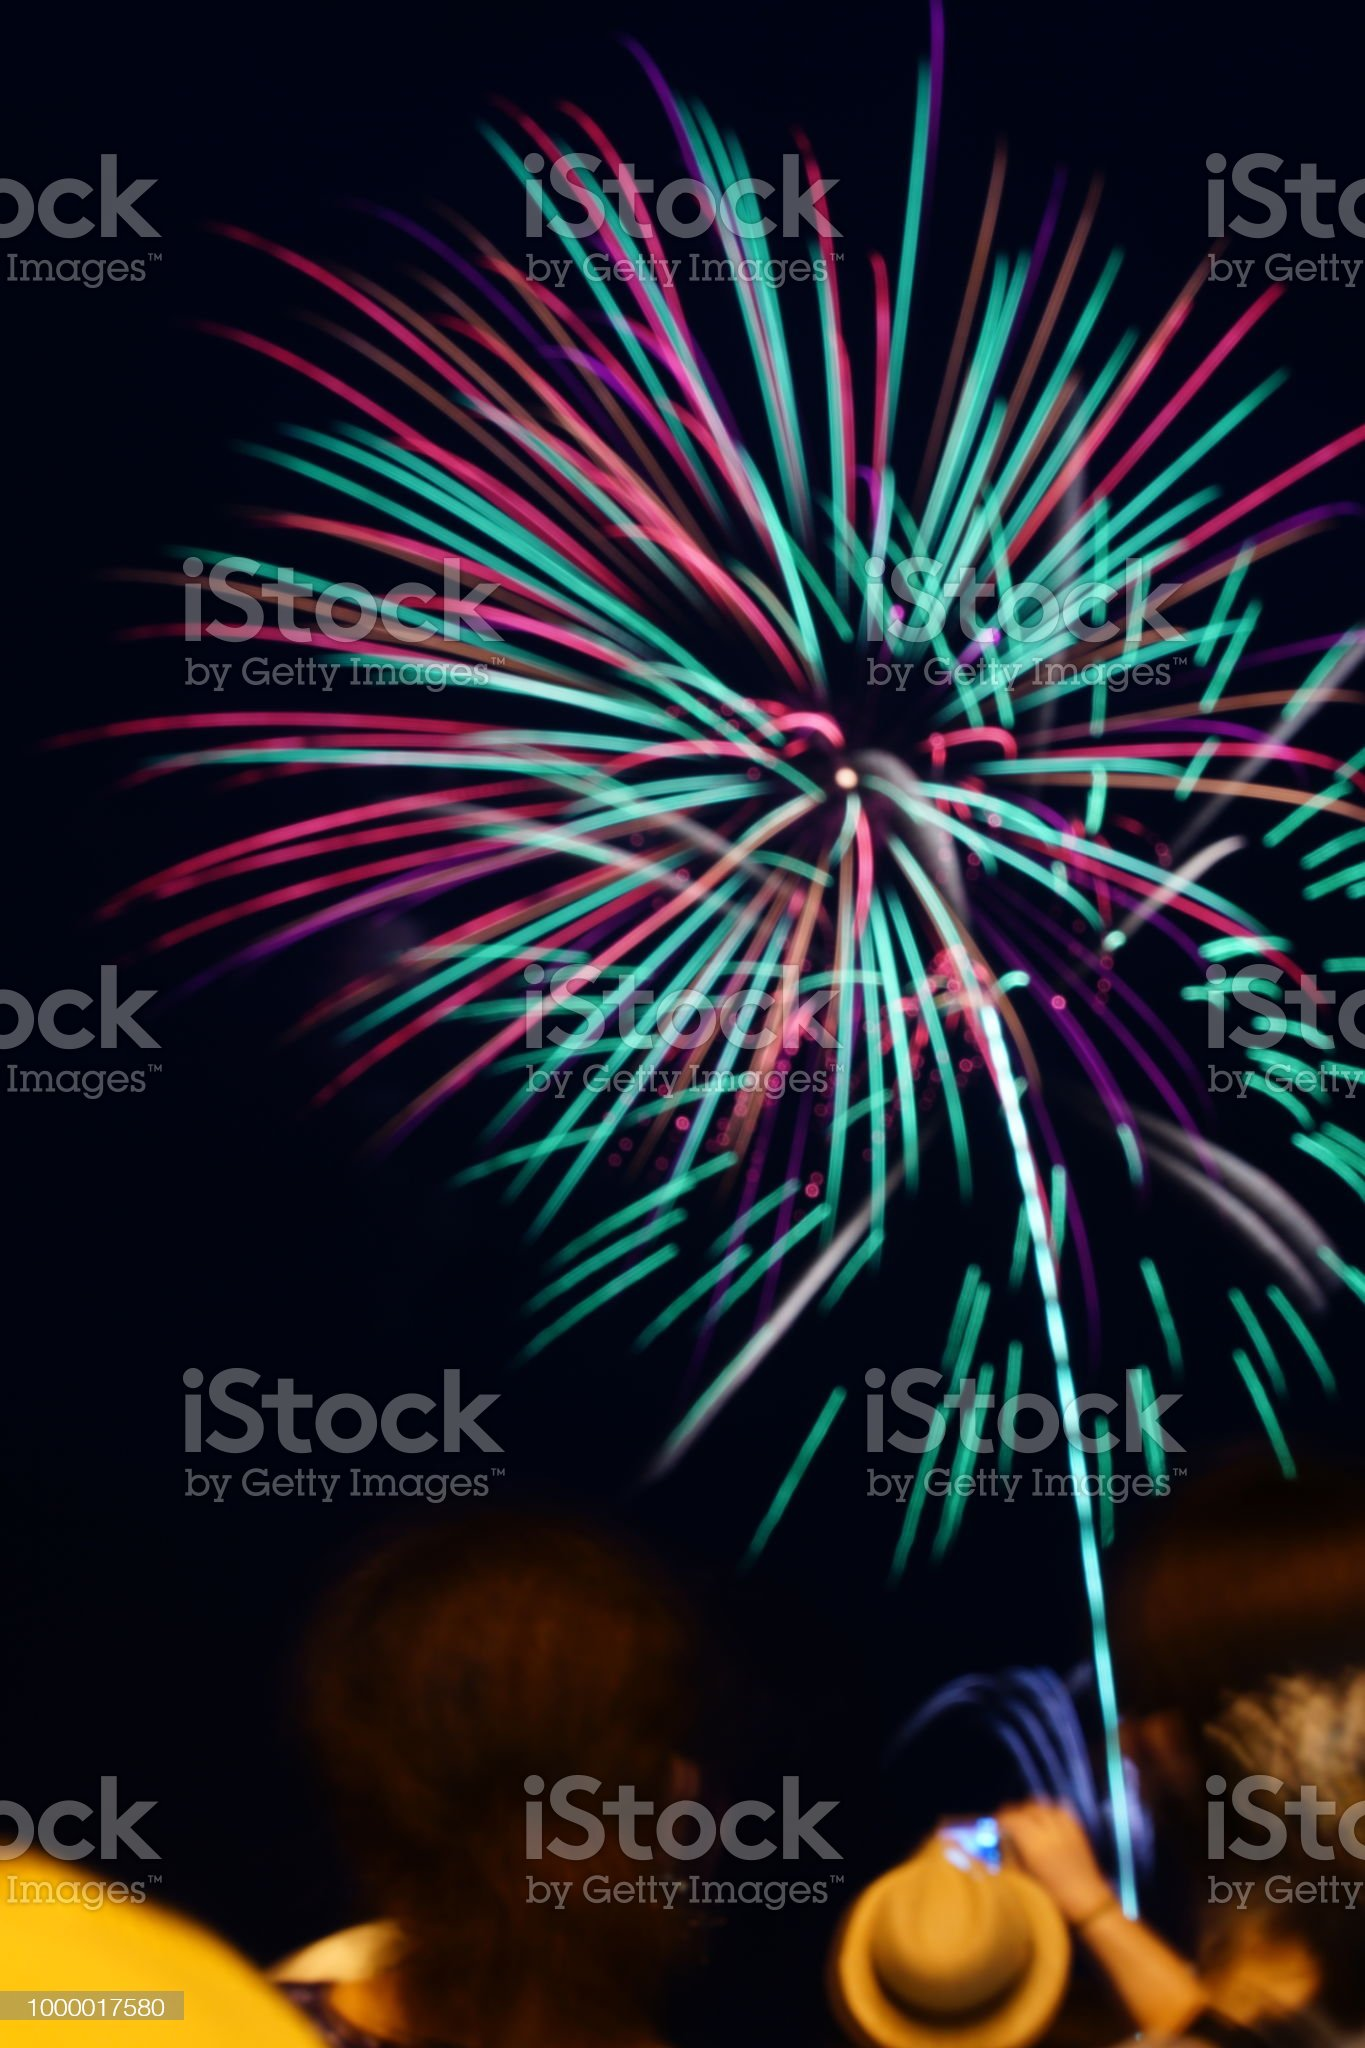 https://media.istockphoto.com/photos/fire-works-in-japan-picture-id1000017580?s=2048x2048